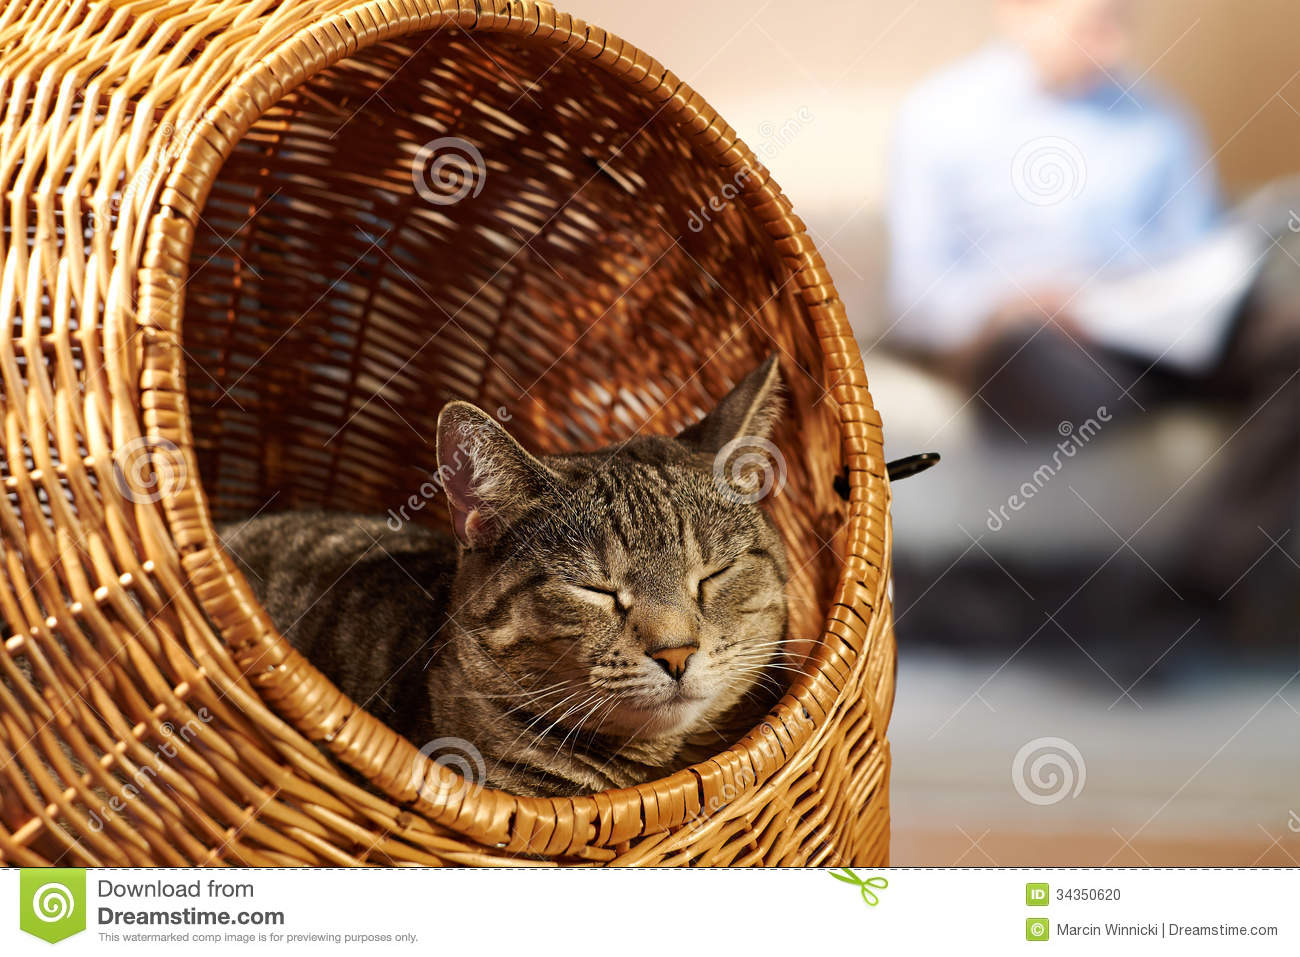 Animal Wicker Hamper Saturday At Home With Cat Stock Photo Image Of Caturday